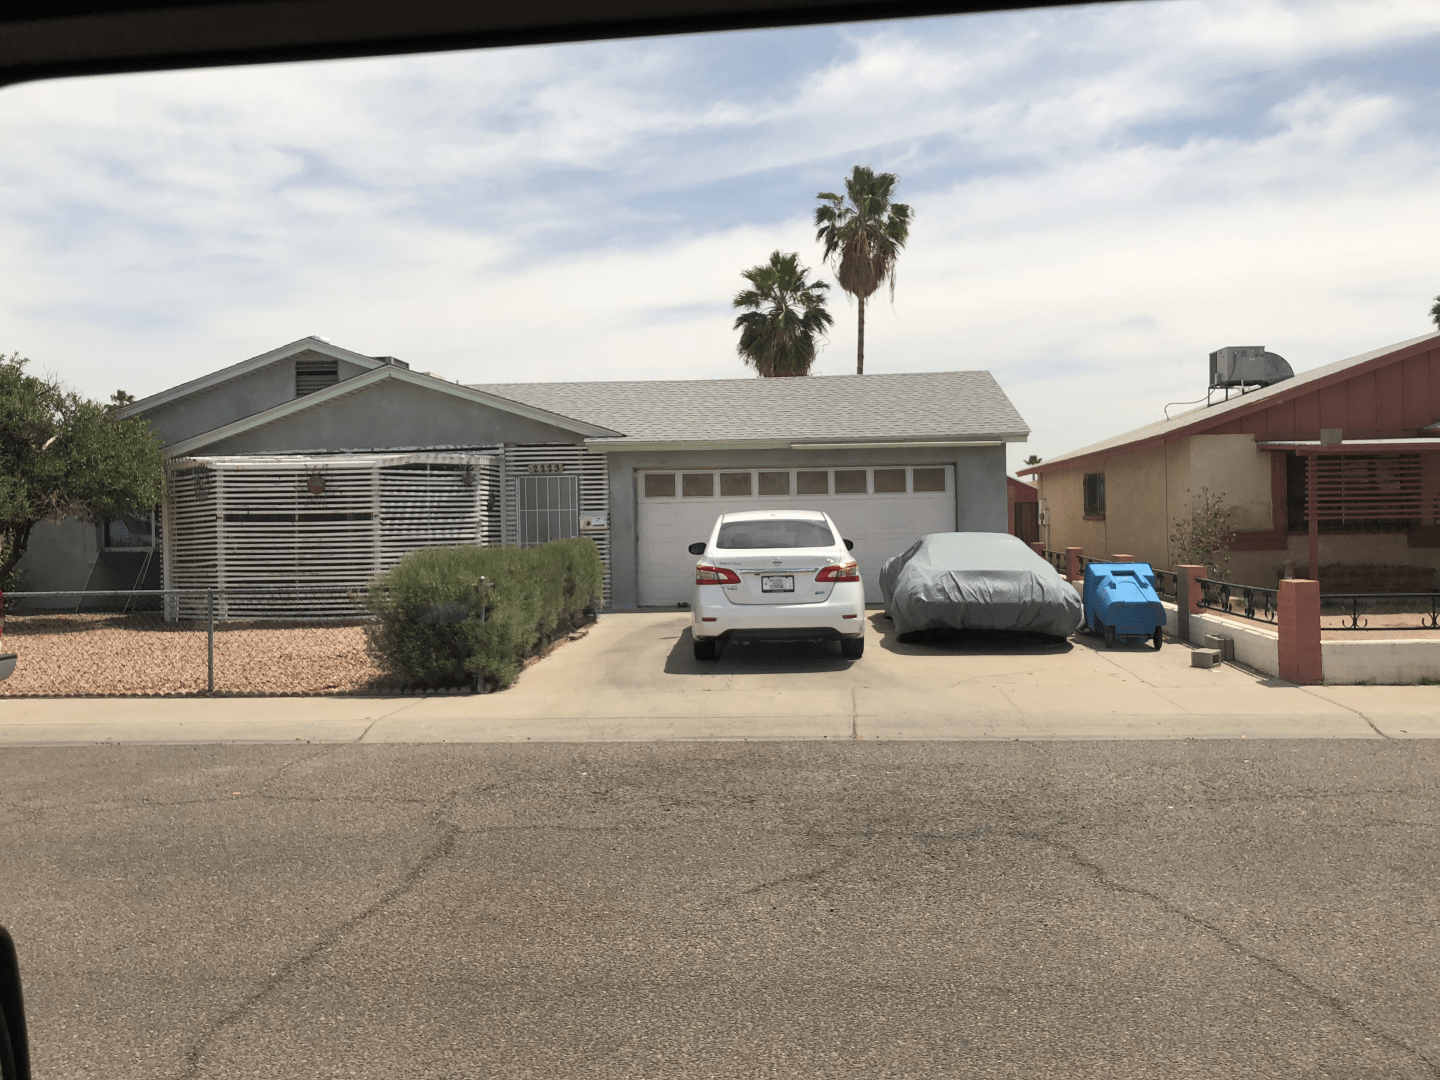 2223 N 59Th Ave, Phoenix, AZ 85035